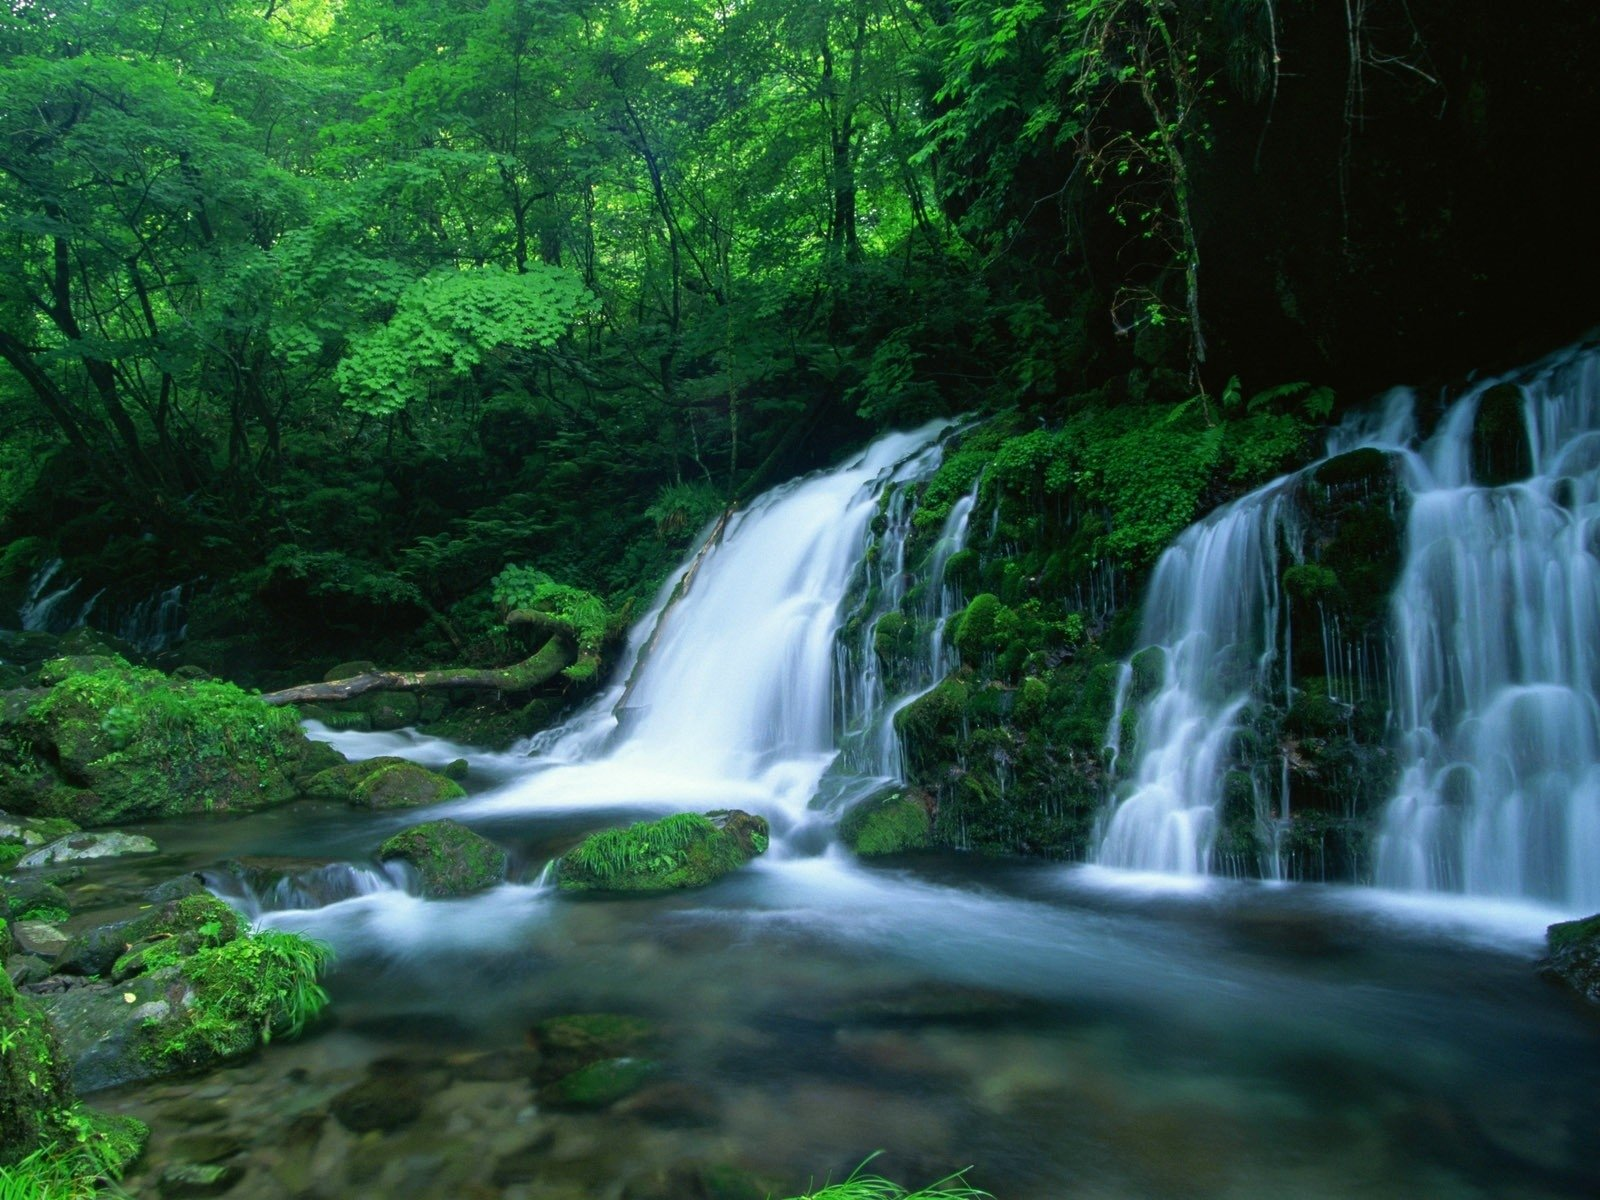 Cool Fall Desktop Wallpaper Green Forest Waterfall Wallpaper And Background Image